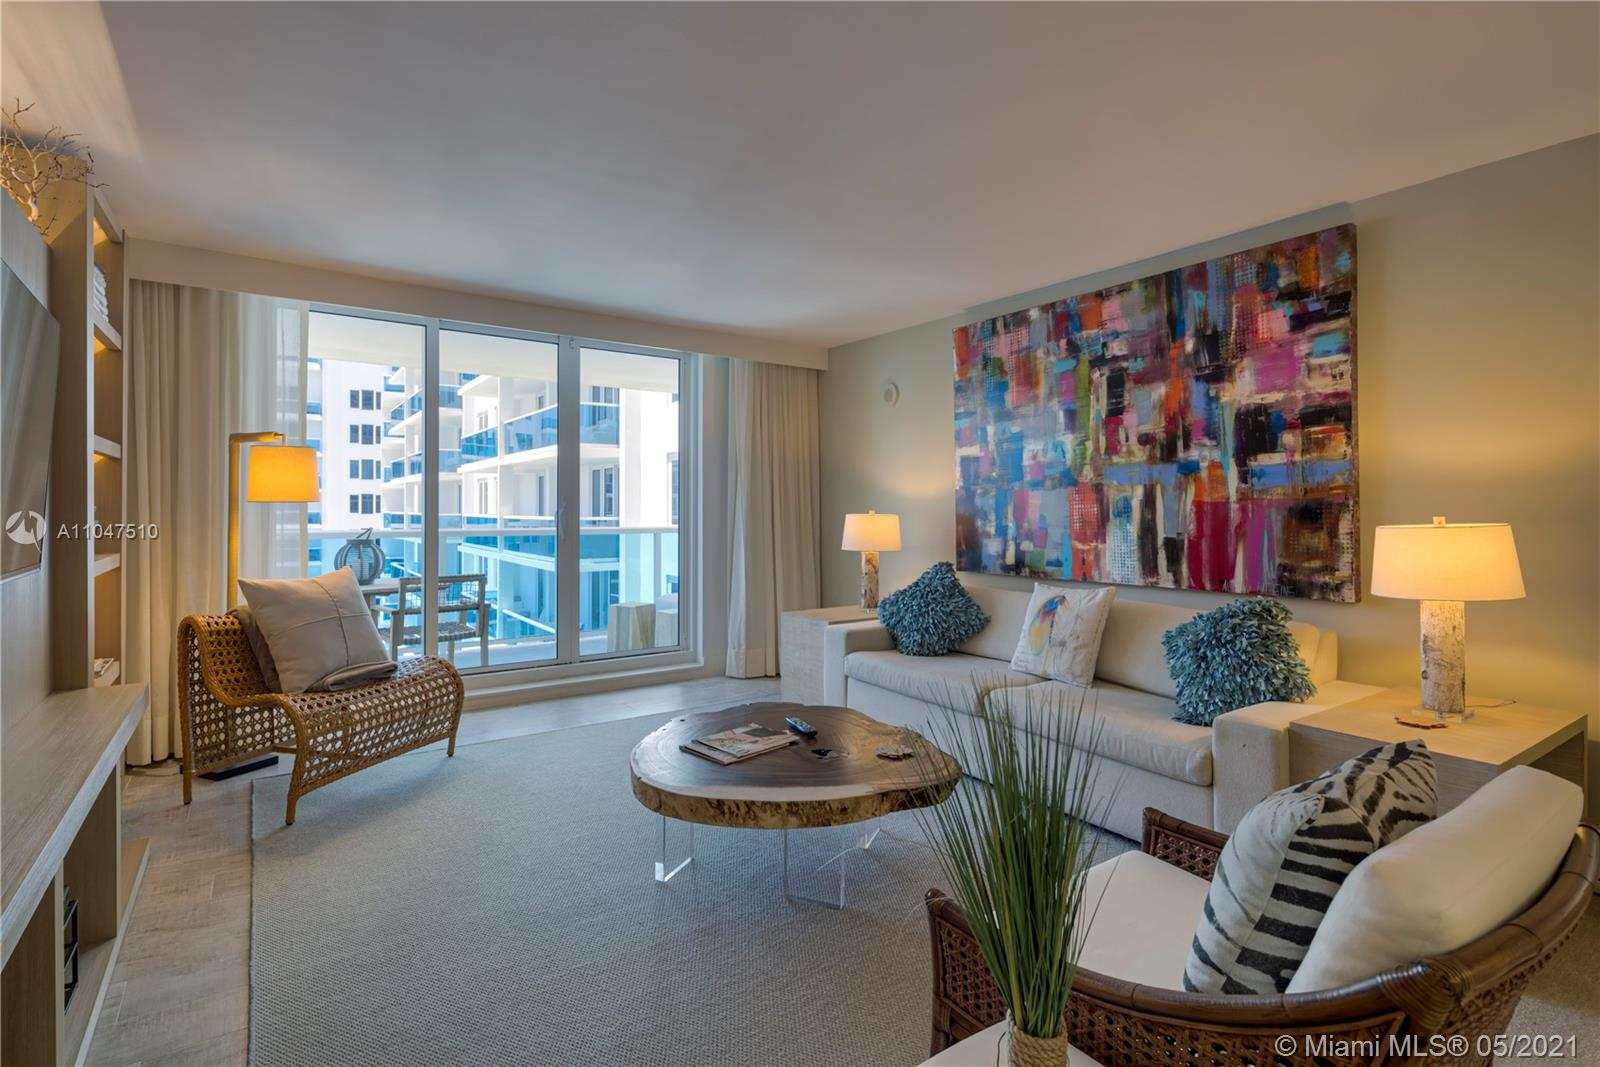 This gorgeous 1,036 Sq. Ft. 1/1 is the perfect combination of all things natural and organic in a luxurious setting. From a furnished private balcony with a double chaise lounge and a table set for two to breathtaking views of the Intracoastal. Enjoy your relaxing living room with a plush white organic sofa that converts into a queen bed, and a 4 seater dining table that leads to a private master bedroom with a king-sized mattress, covered in 100% cotton sheets. When booking this condo, you receive hotel privileges just as if you were staying directly through the hotel. Hotel amenities include 4 pools, gym, Bamford spa, Soul Cycle, 6 onsite restaurants, 4 bars, valet service 24 hours a day, and chauffeured sedans.